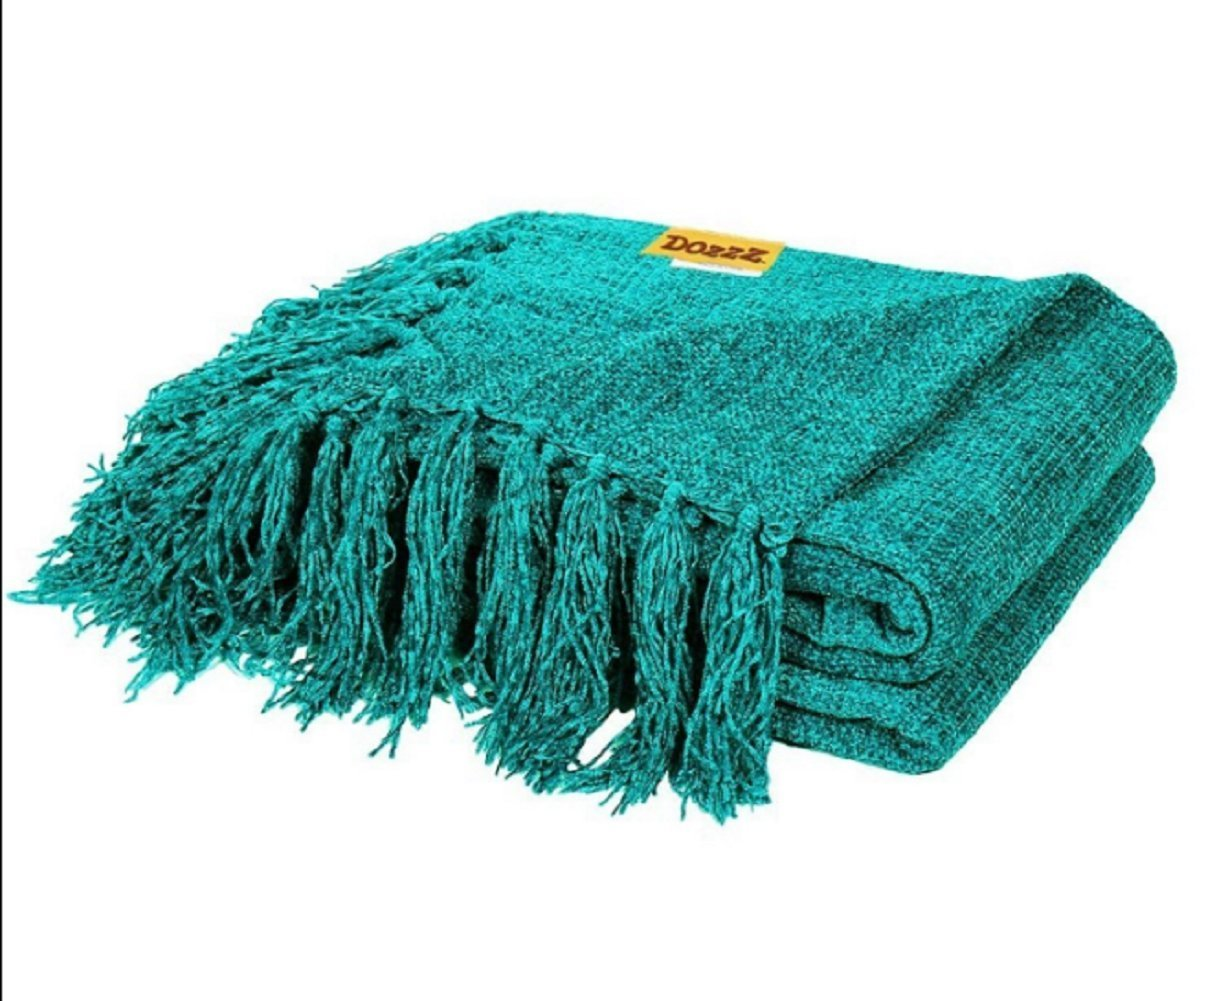 Dozzz Decorative Throw Light Weight Chenille Blanket For Couch Teal Throws With Fringe Sofa